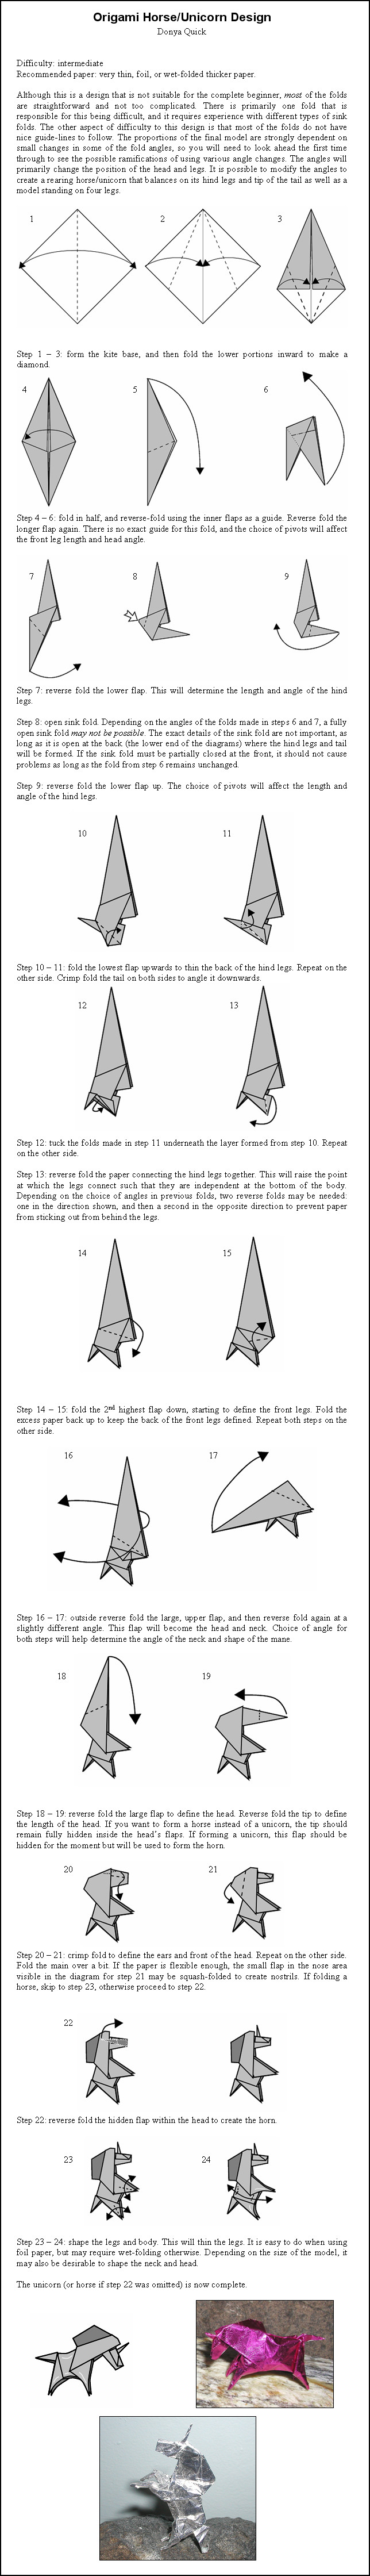 Two In One Mini Weapon Rhyoutubecom Ninja Turial Youtuberhyoutubecom Origami Sword Diagram Http Wwworigamimakecom Easyorigamisword Gallery Of Donya Quick